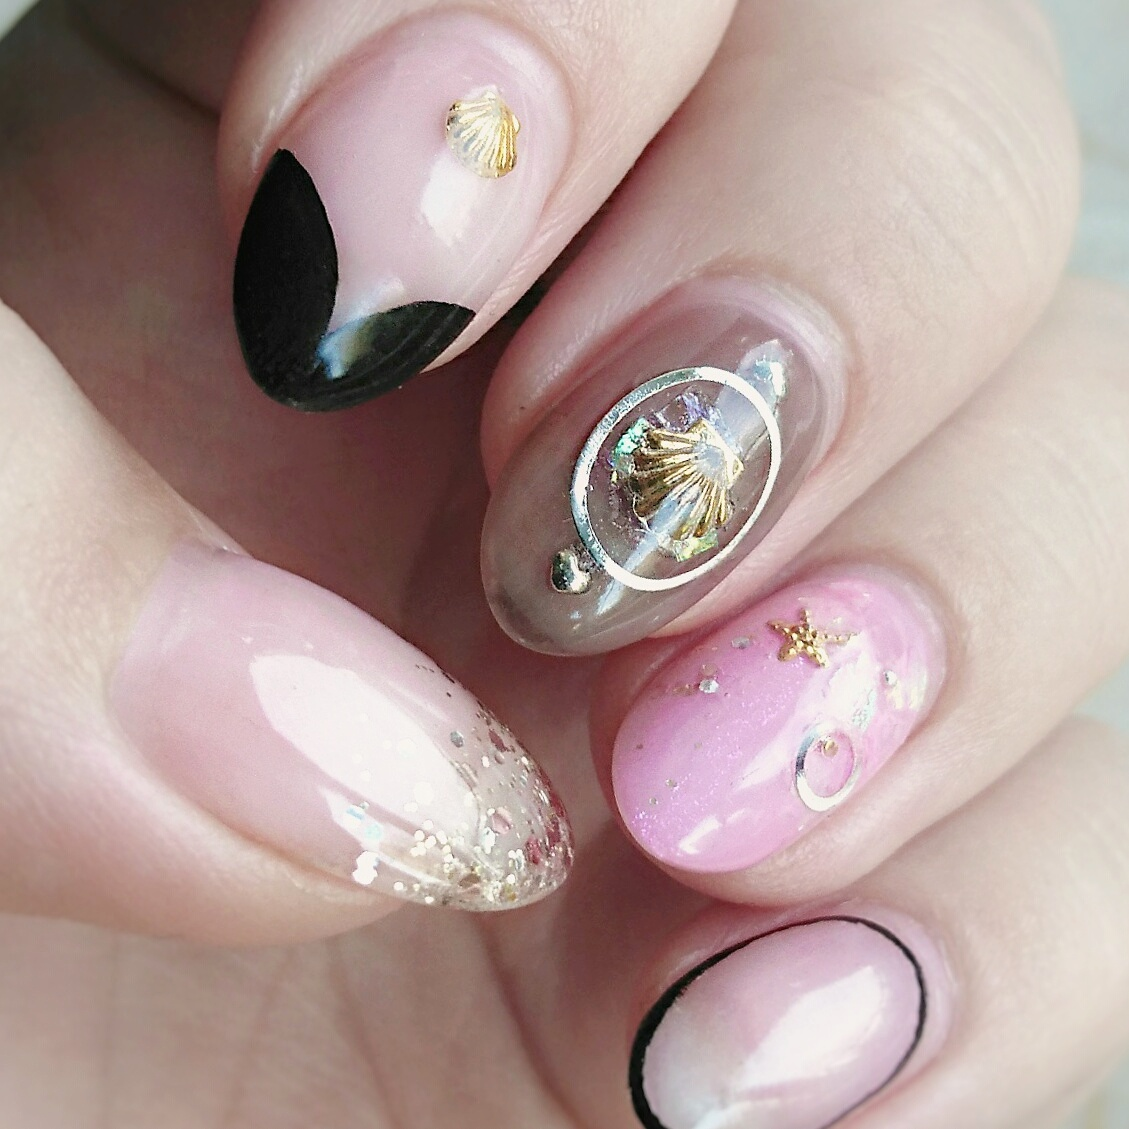 Fancy nail art (Image: Sabine Lemmens, Make-up Artist &amp;amp; Hair Stylist)<p></p>